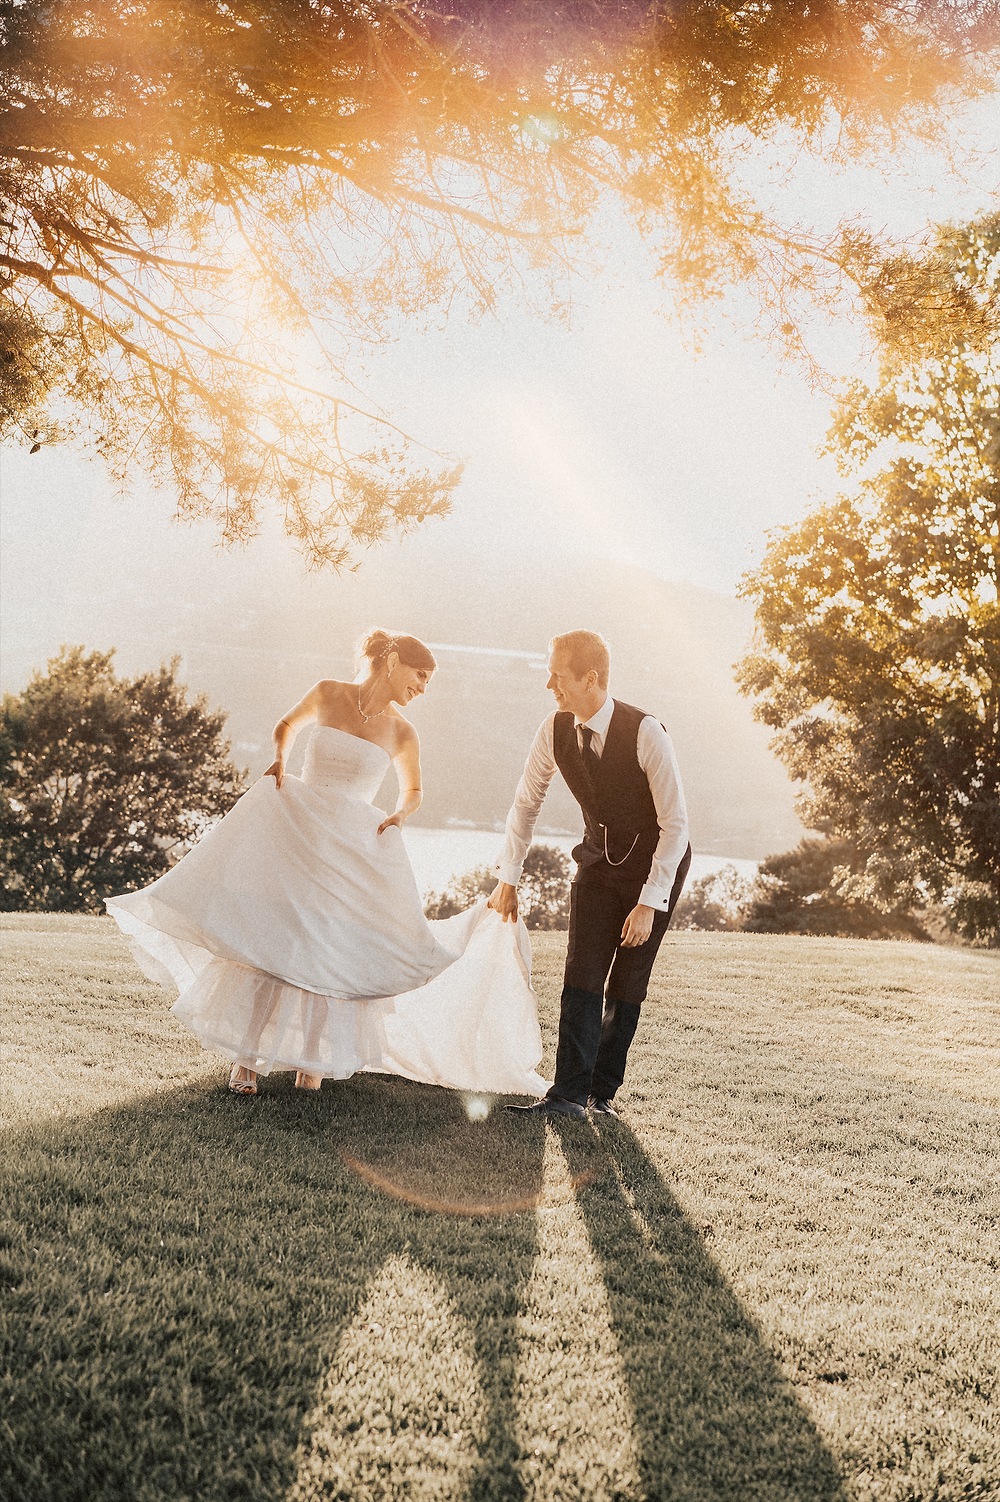 amoureux mariage seance photo couple soleil couchant mariage maries mariee tendresse lumiere